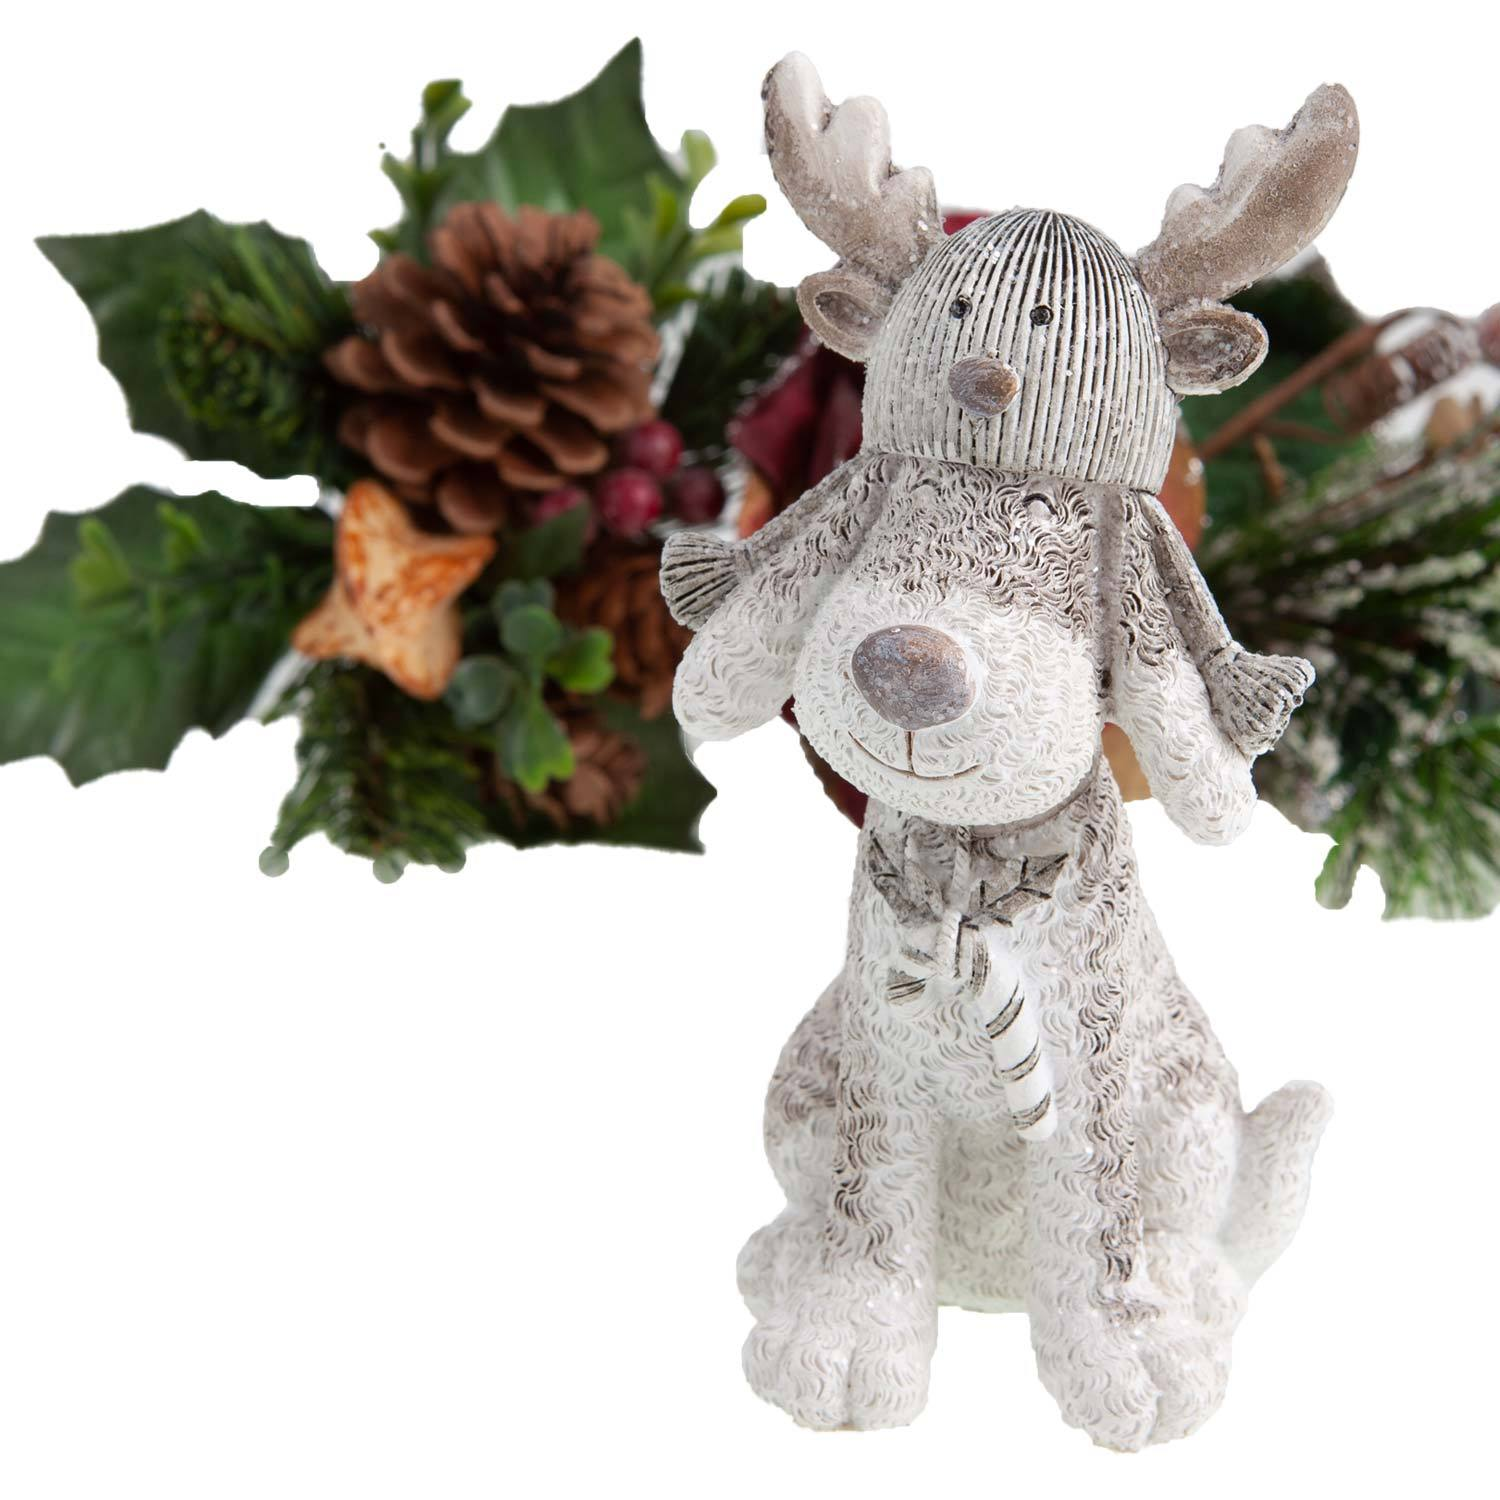 Dog Krazy Gifts - Dog in Reindeer Hat Christmas Decoration - available from the Christmas Grotto at DogKrazyGifts.co.uk